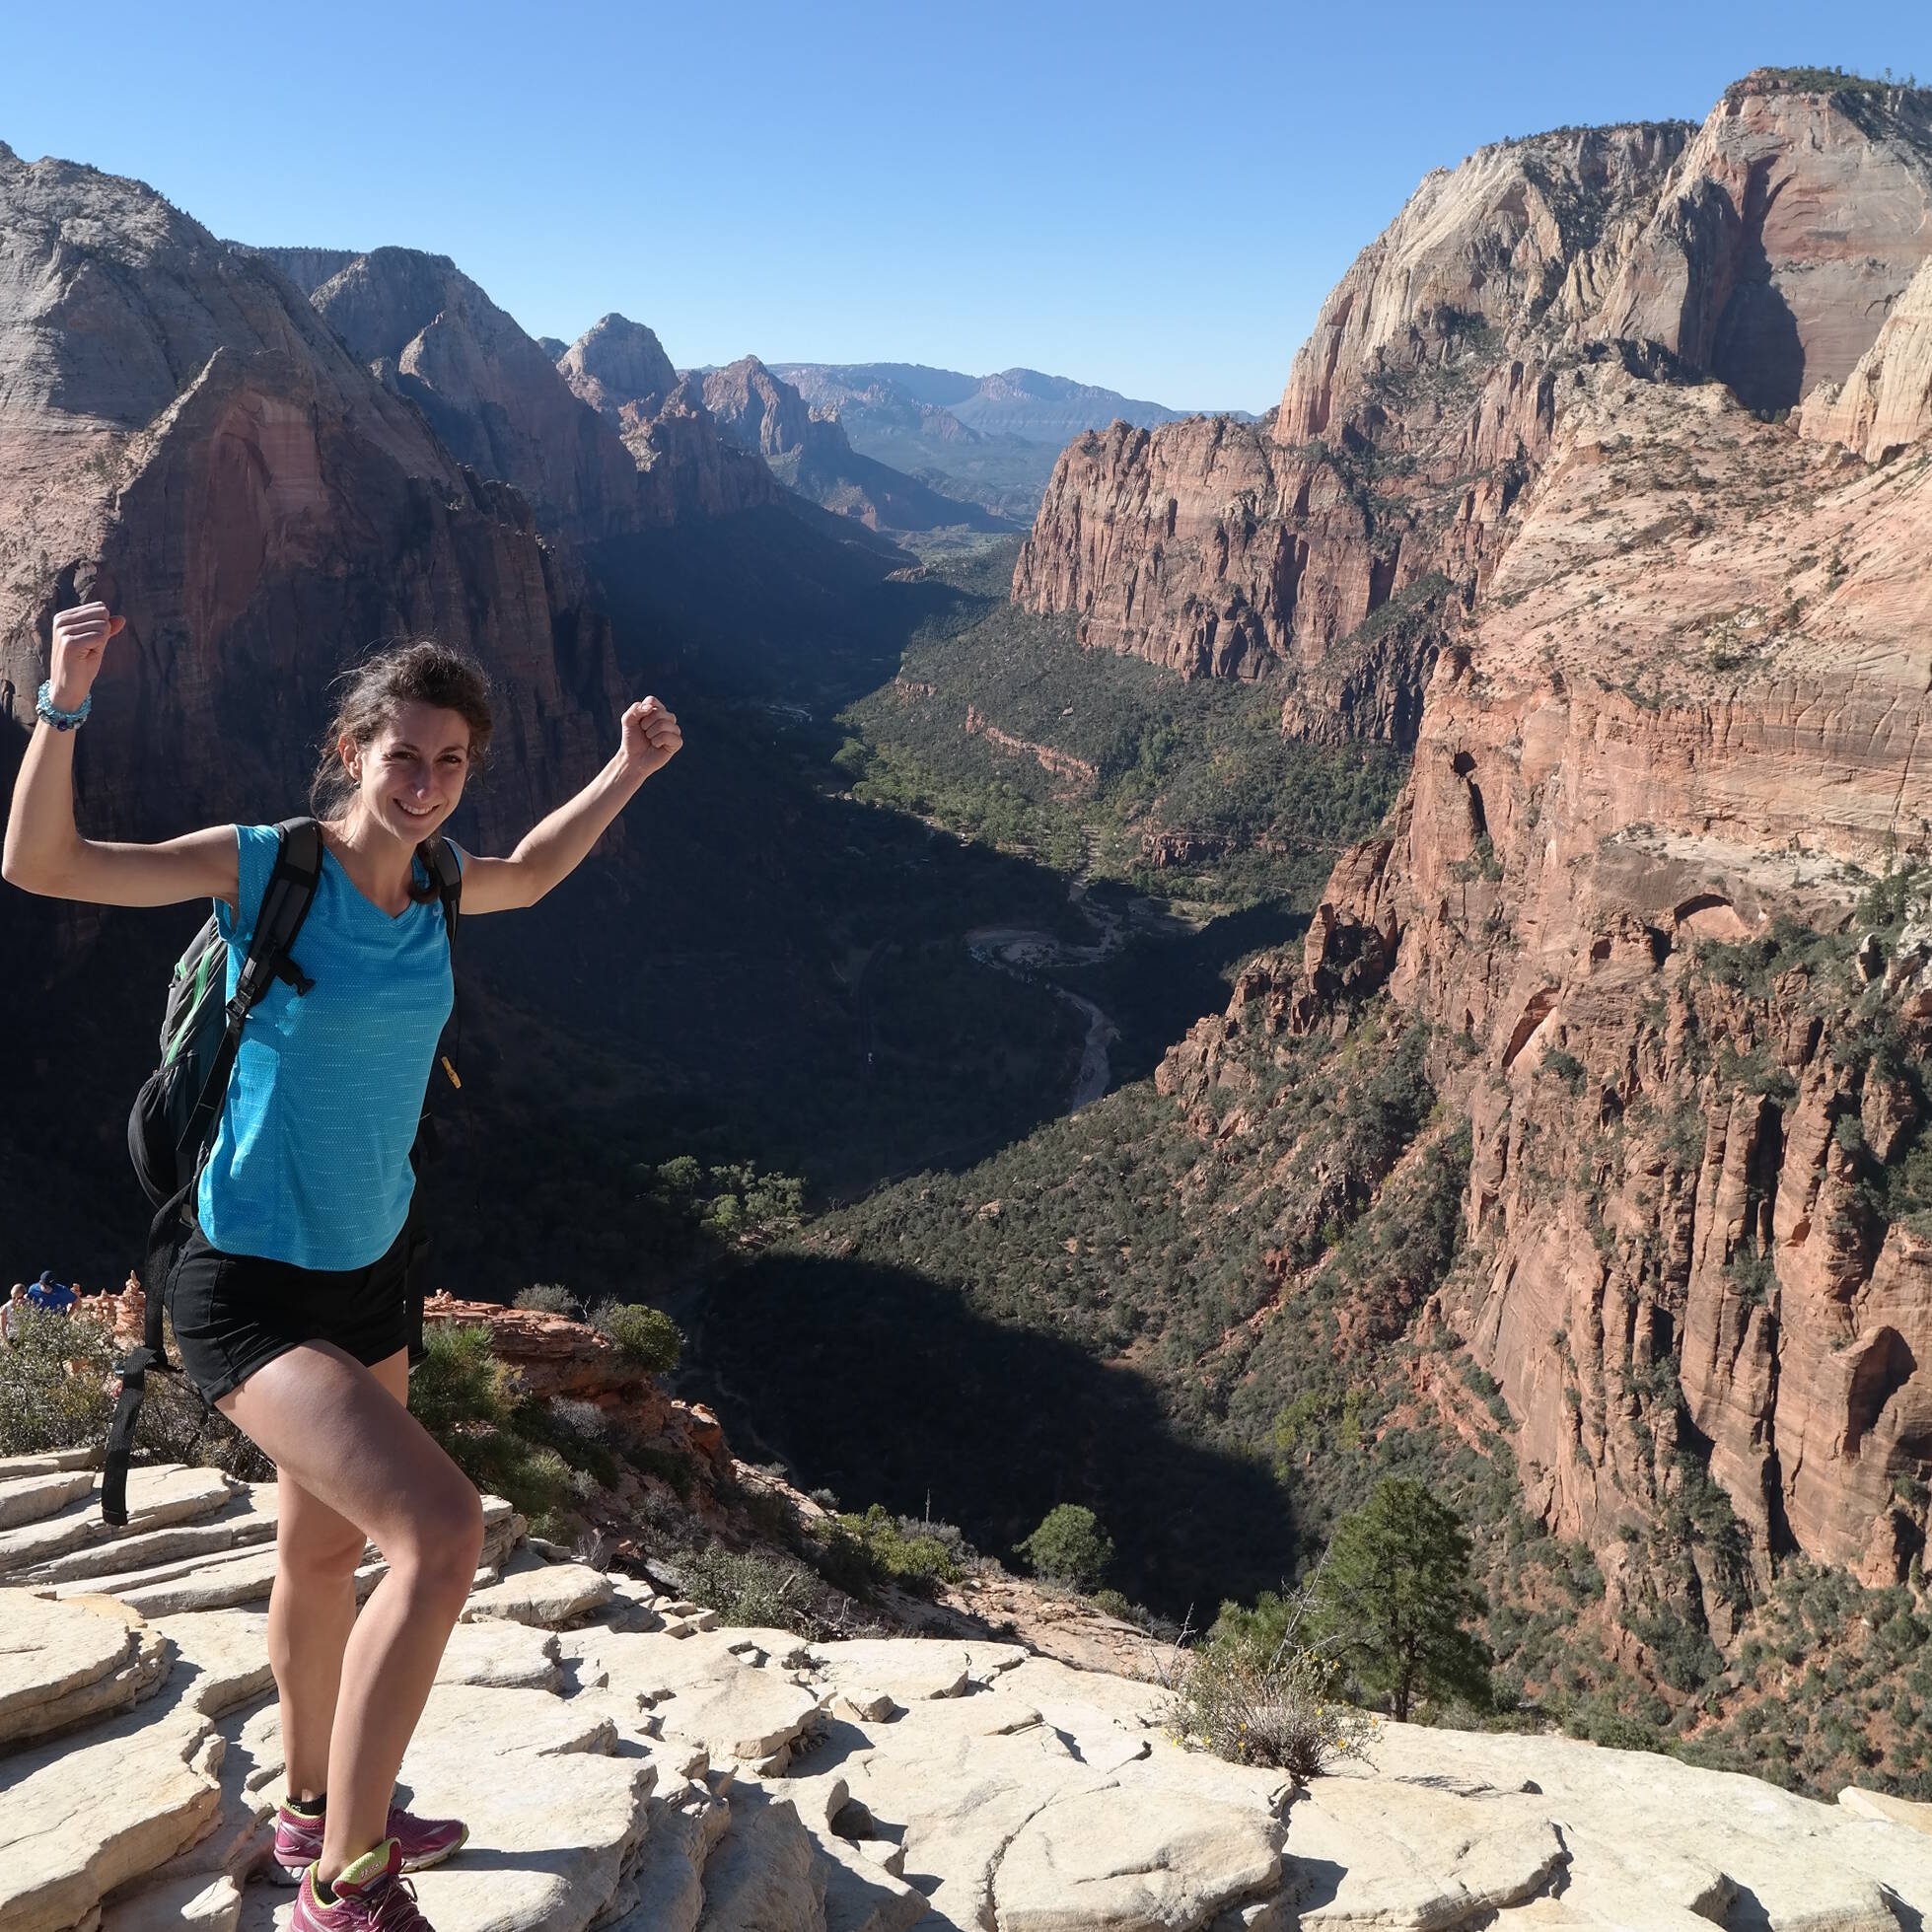 Top uitzicht Angels Landing, Zion National Park